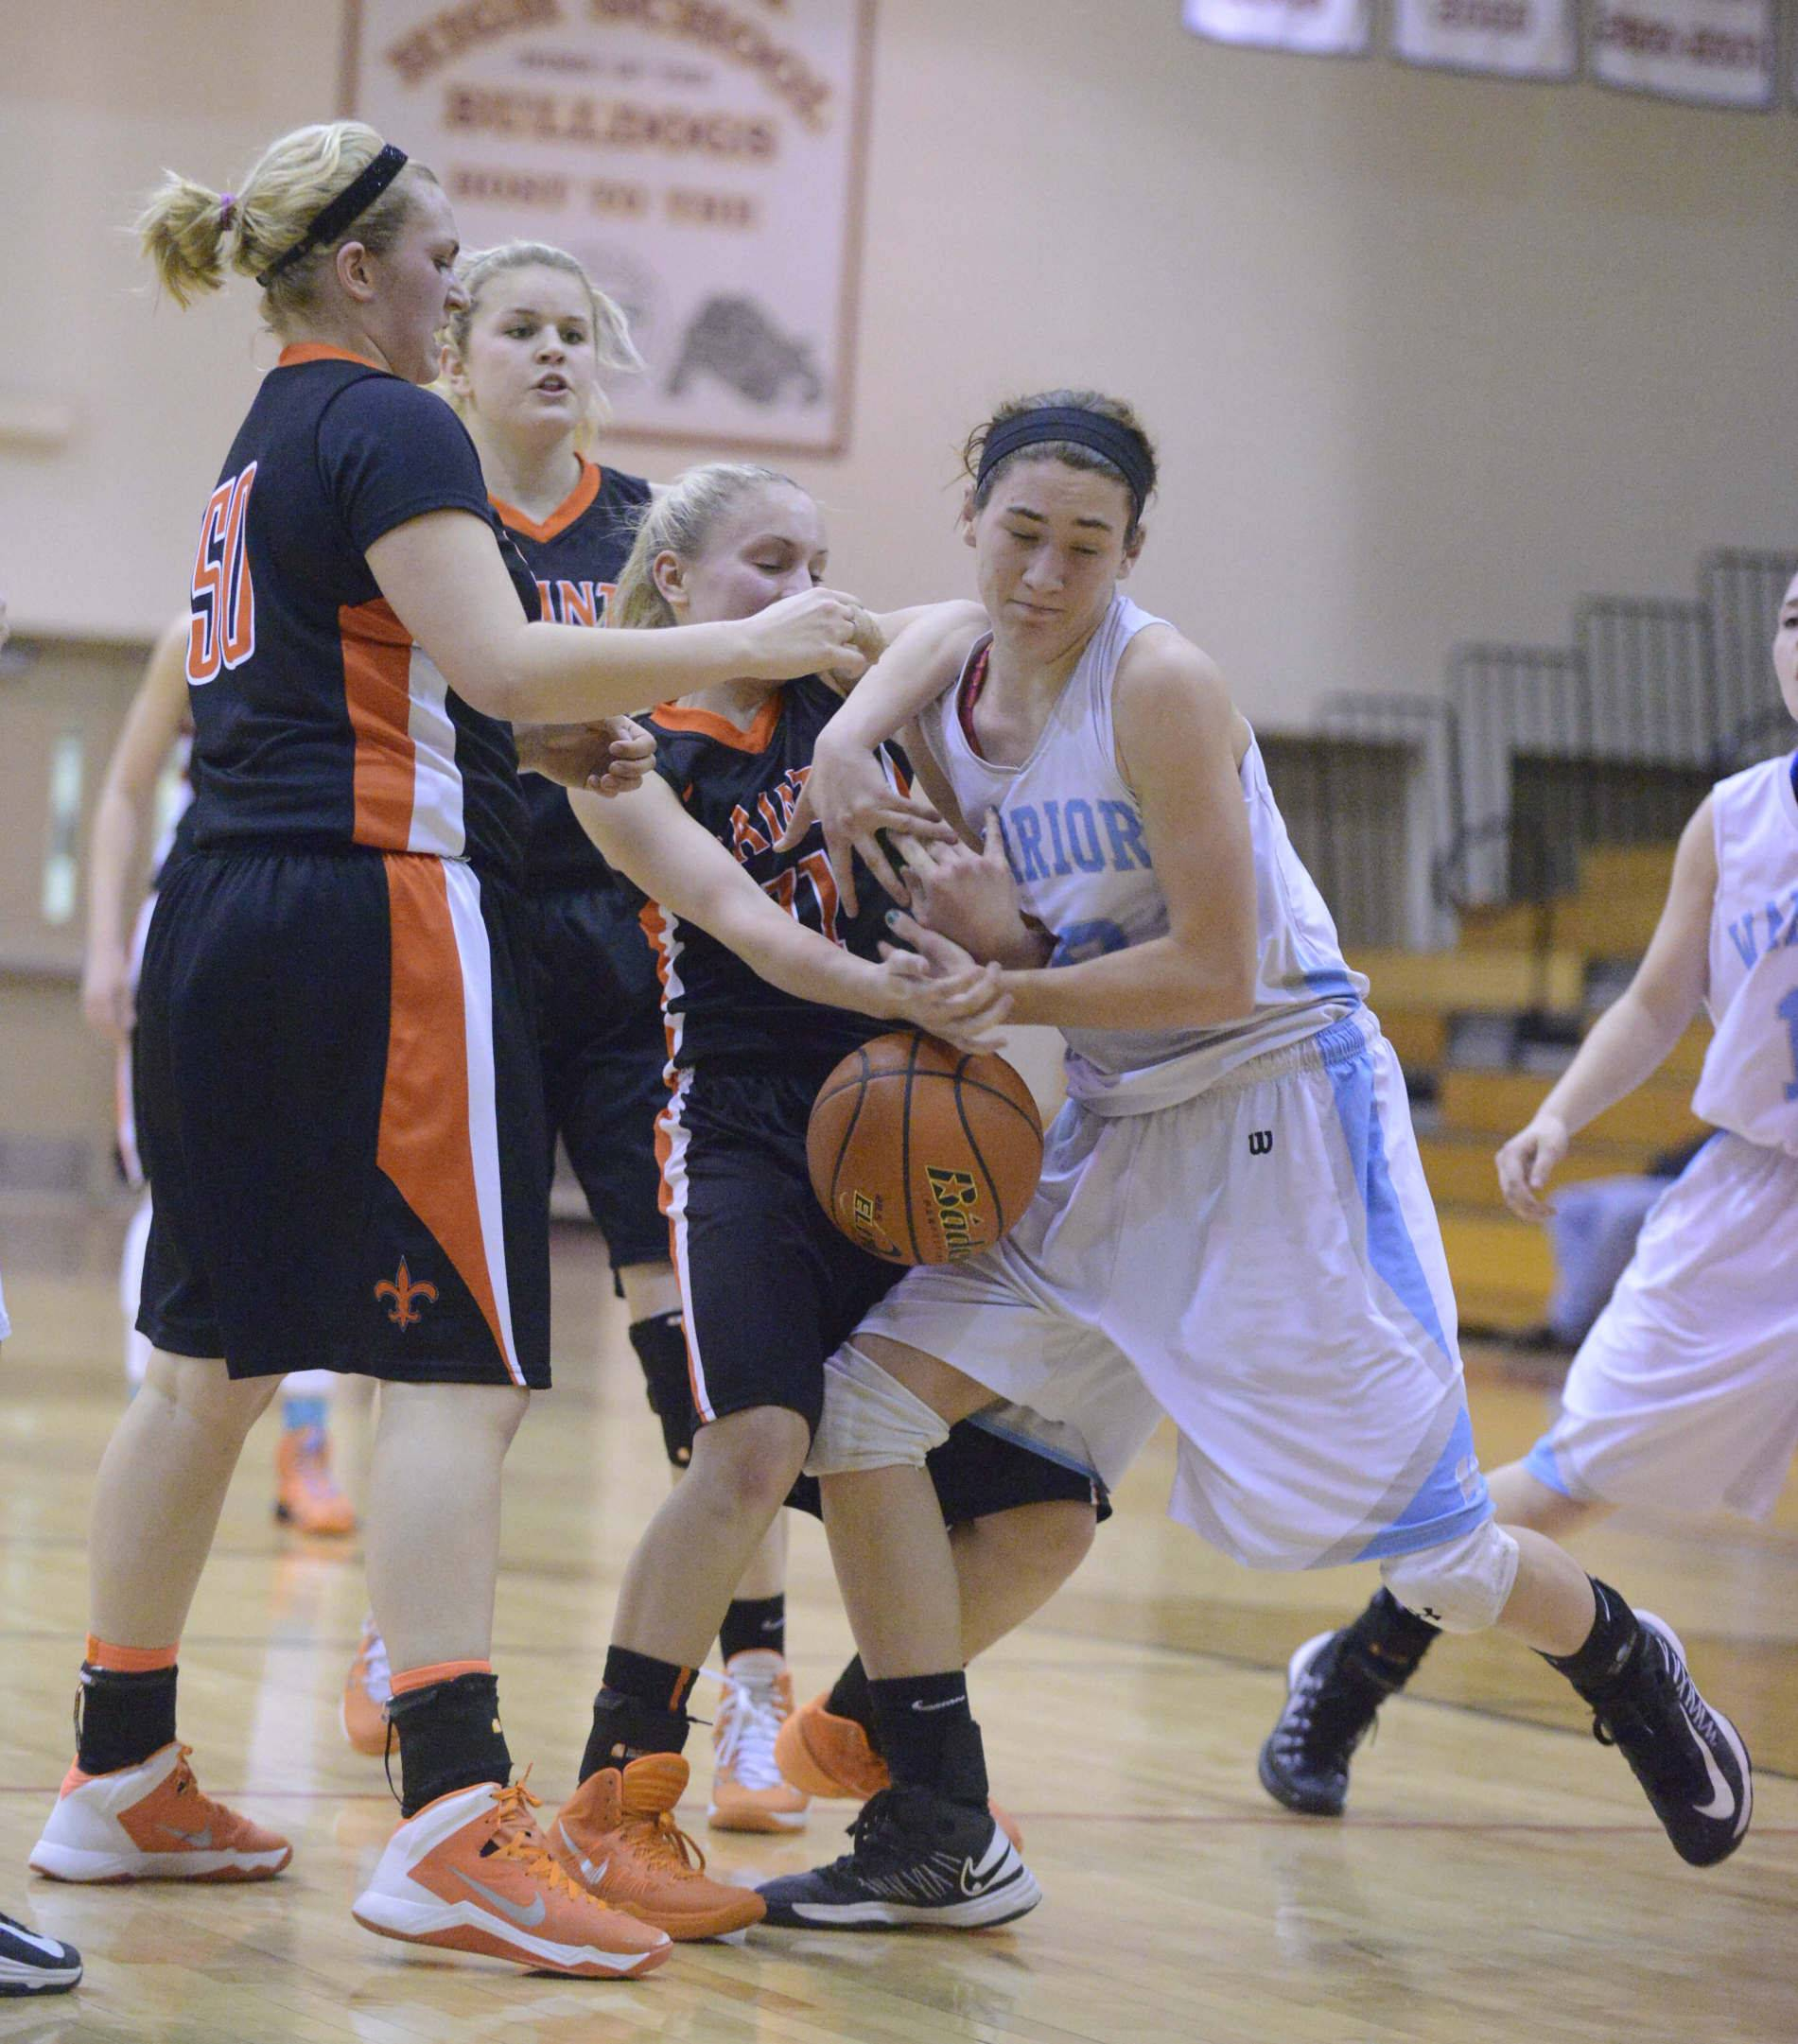 Images: Willowbrook vs. St. Charles East girls basketball